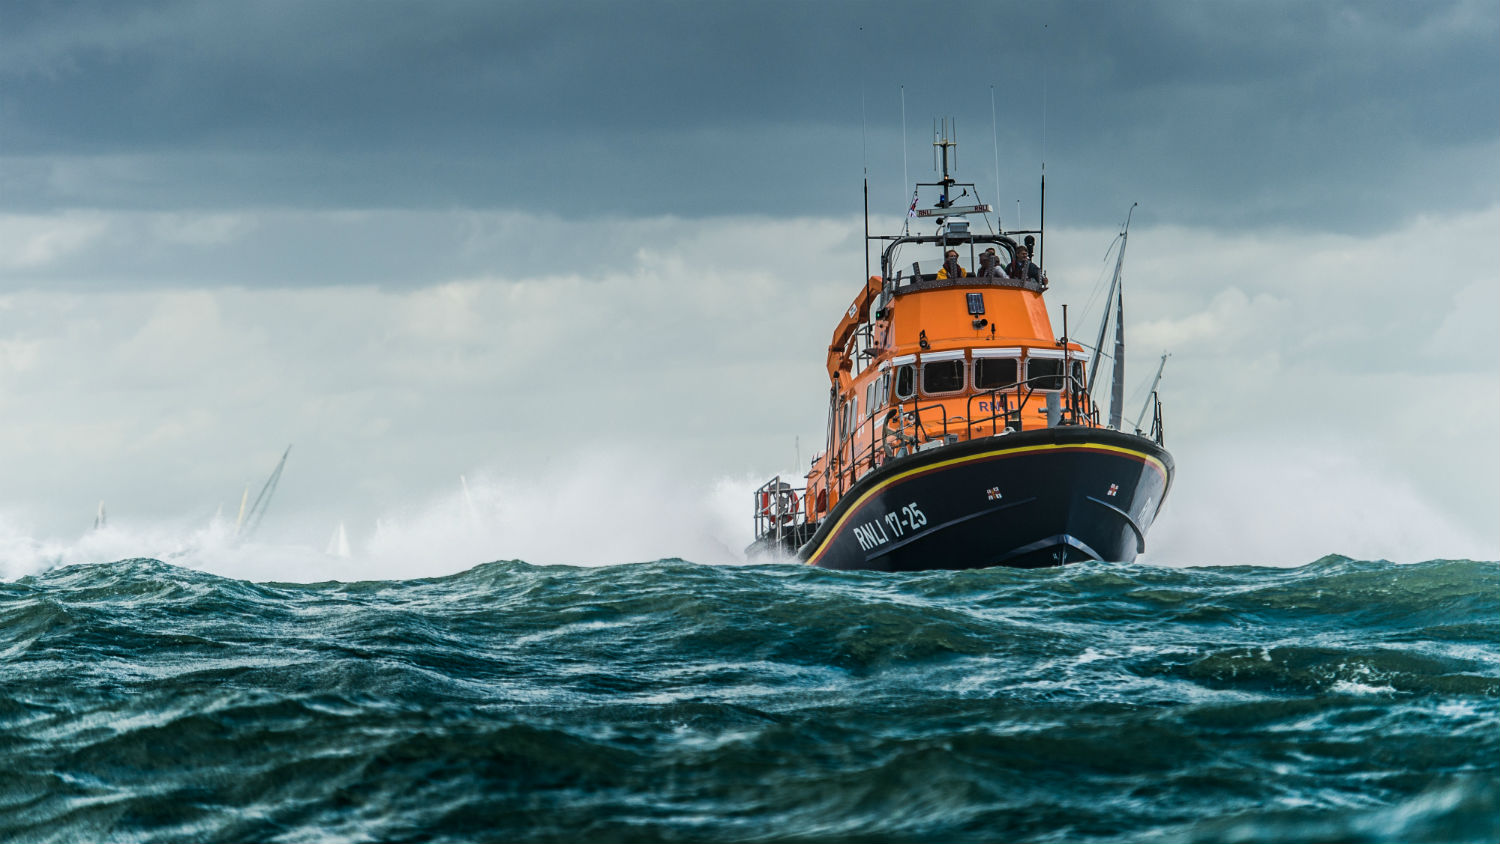 Yarmouth RNLI's Severn class lifeboat, Eric and Susan Hiscock (Wanderer) 17-25, providing safety cover during the 2016 Round the Island Race